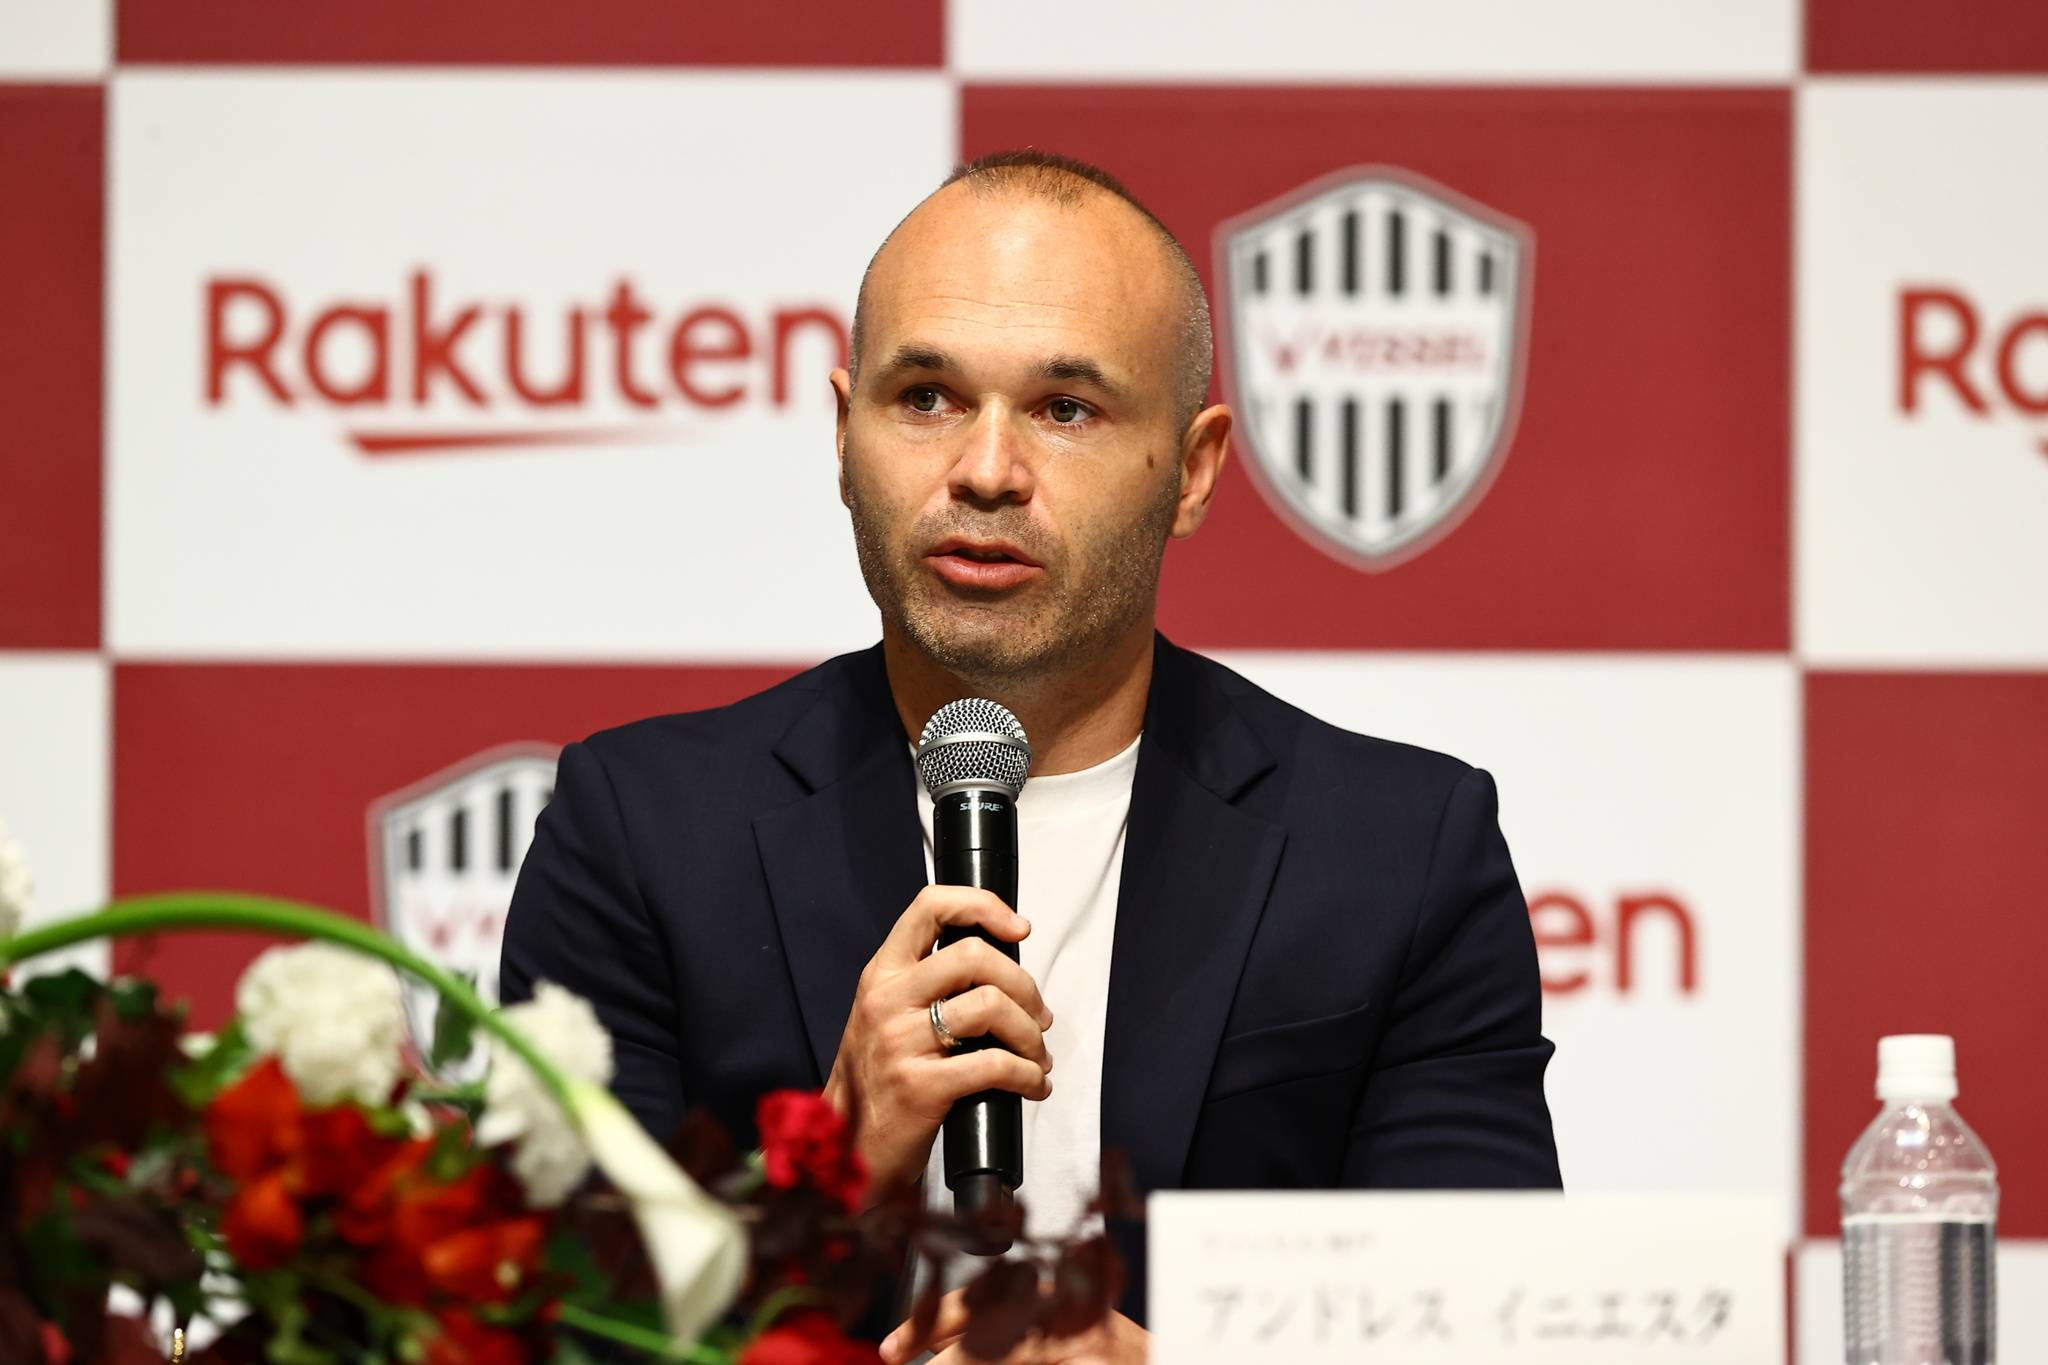 Vissel Kobe captain Andres Iniesta speaks during a news conference announcing his contract extension with the club on Tuesday. | VISSEL KOBE